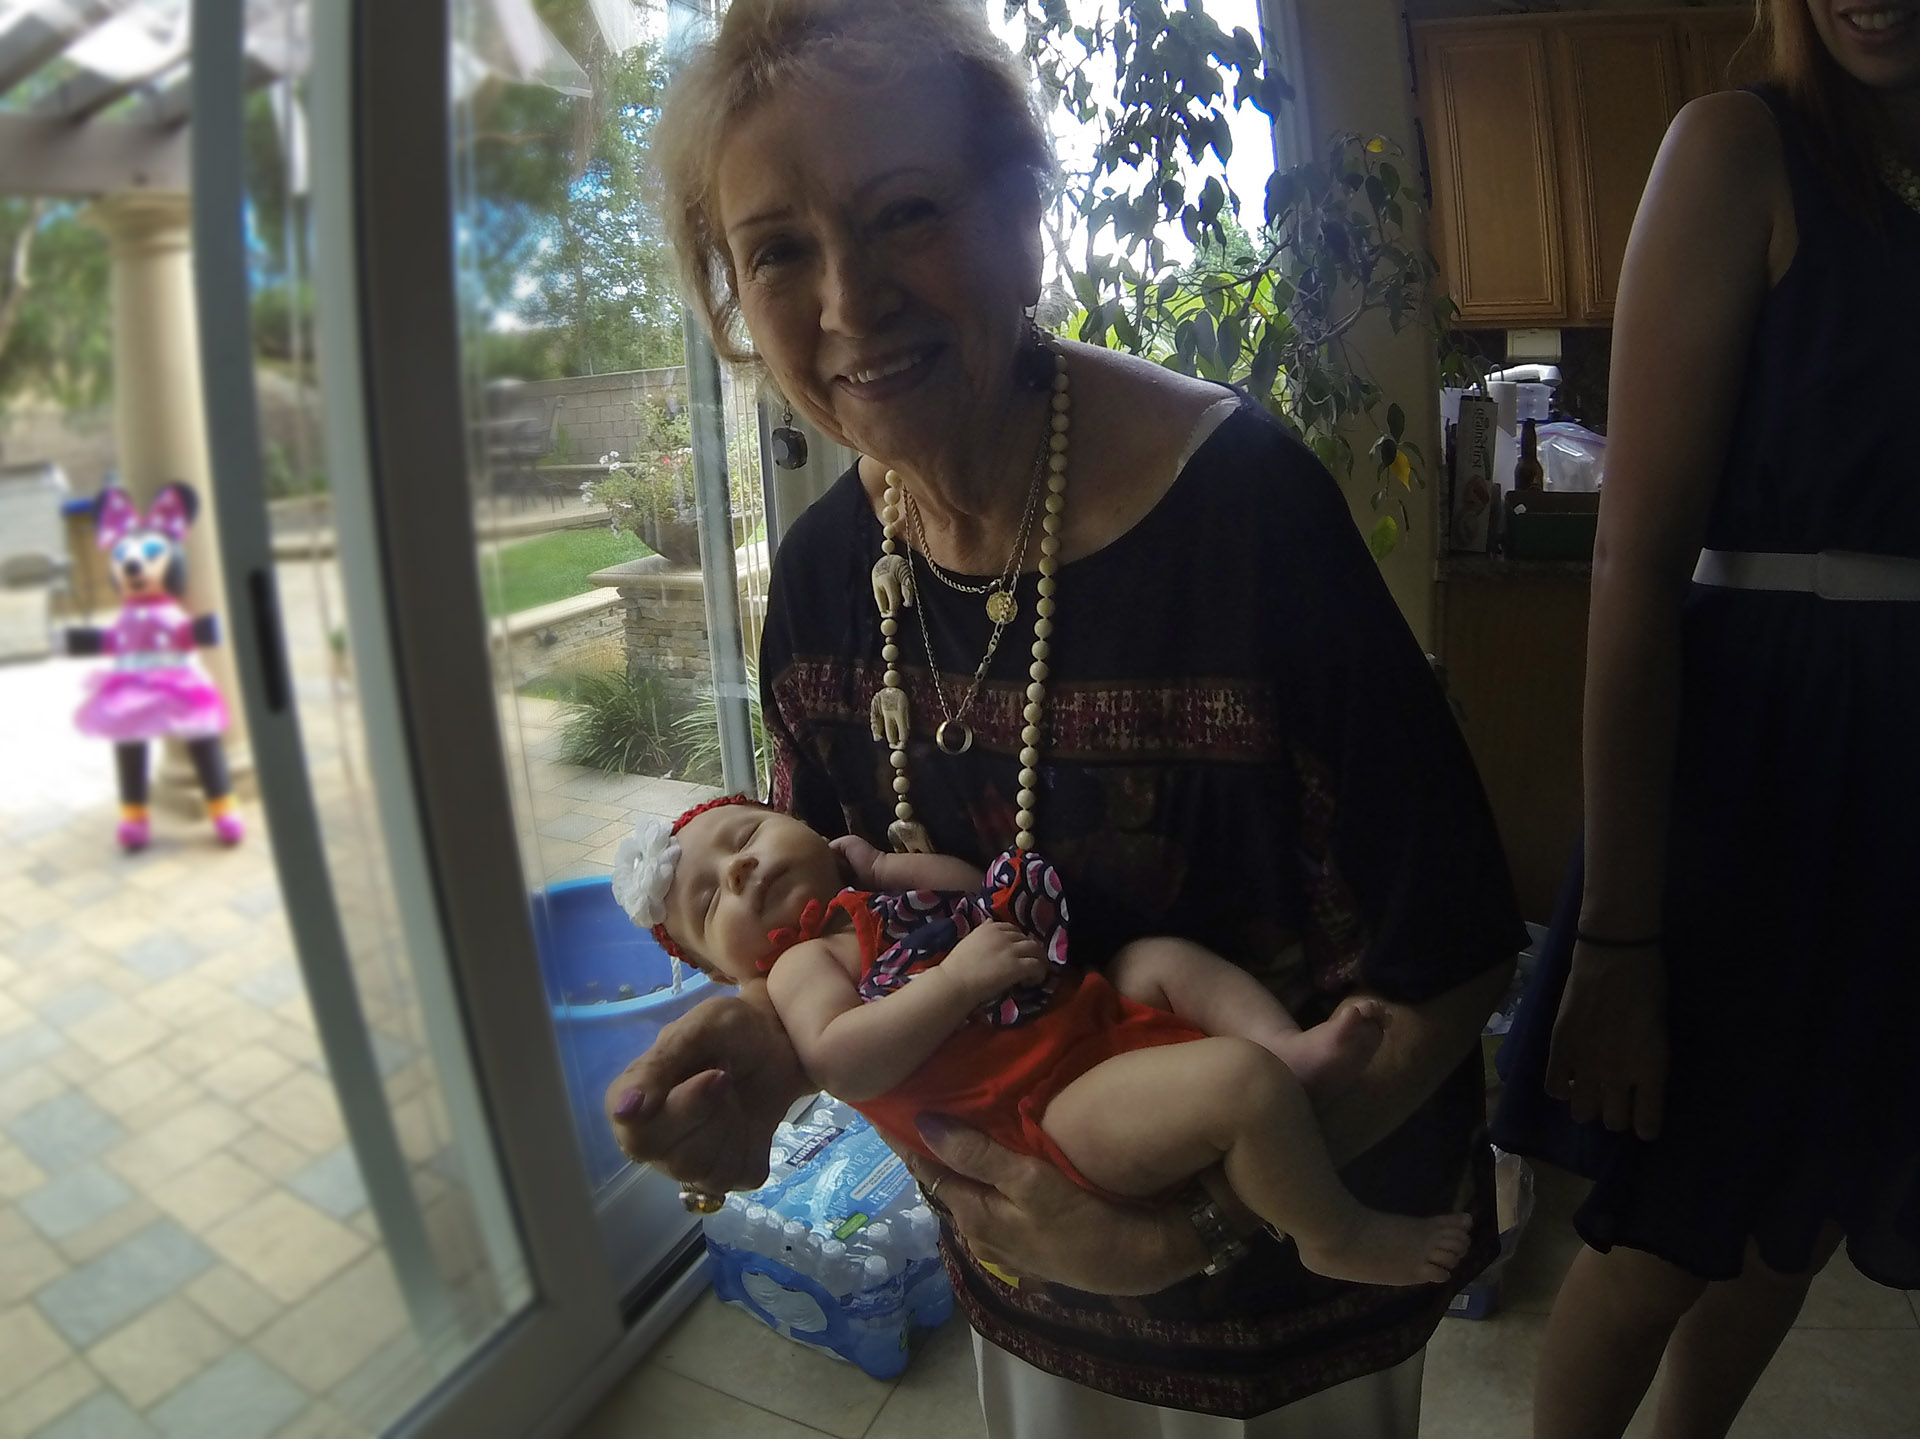 Sheila Zucman holds baby Lianna, 31 days old, at Victor & Alicia Vargas home in Chino Hills